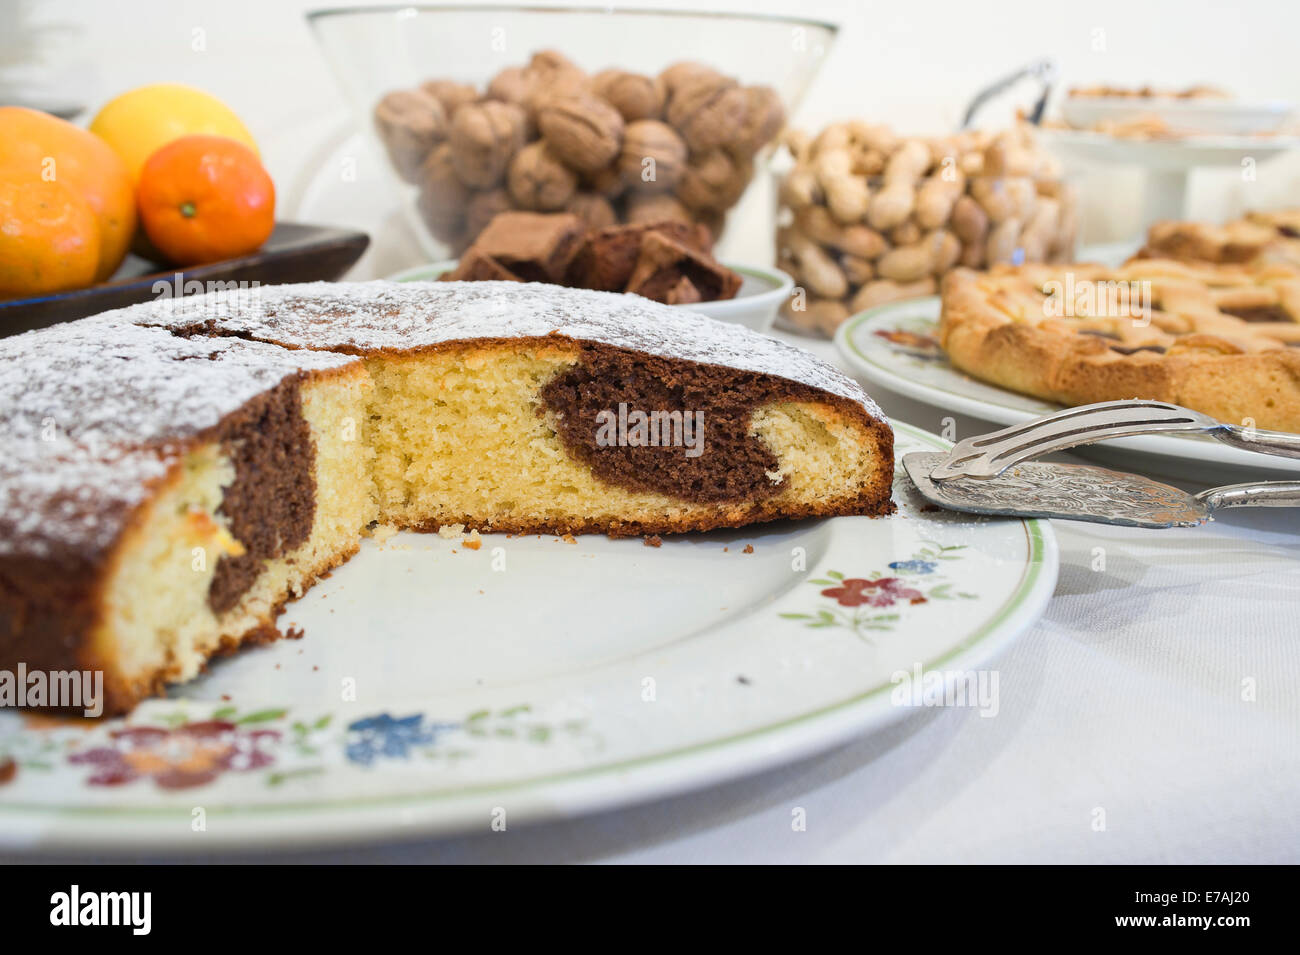 table set for breakfast with chocolate cake closeup - Stock Image